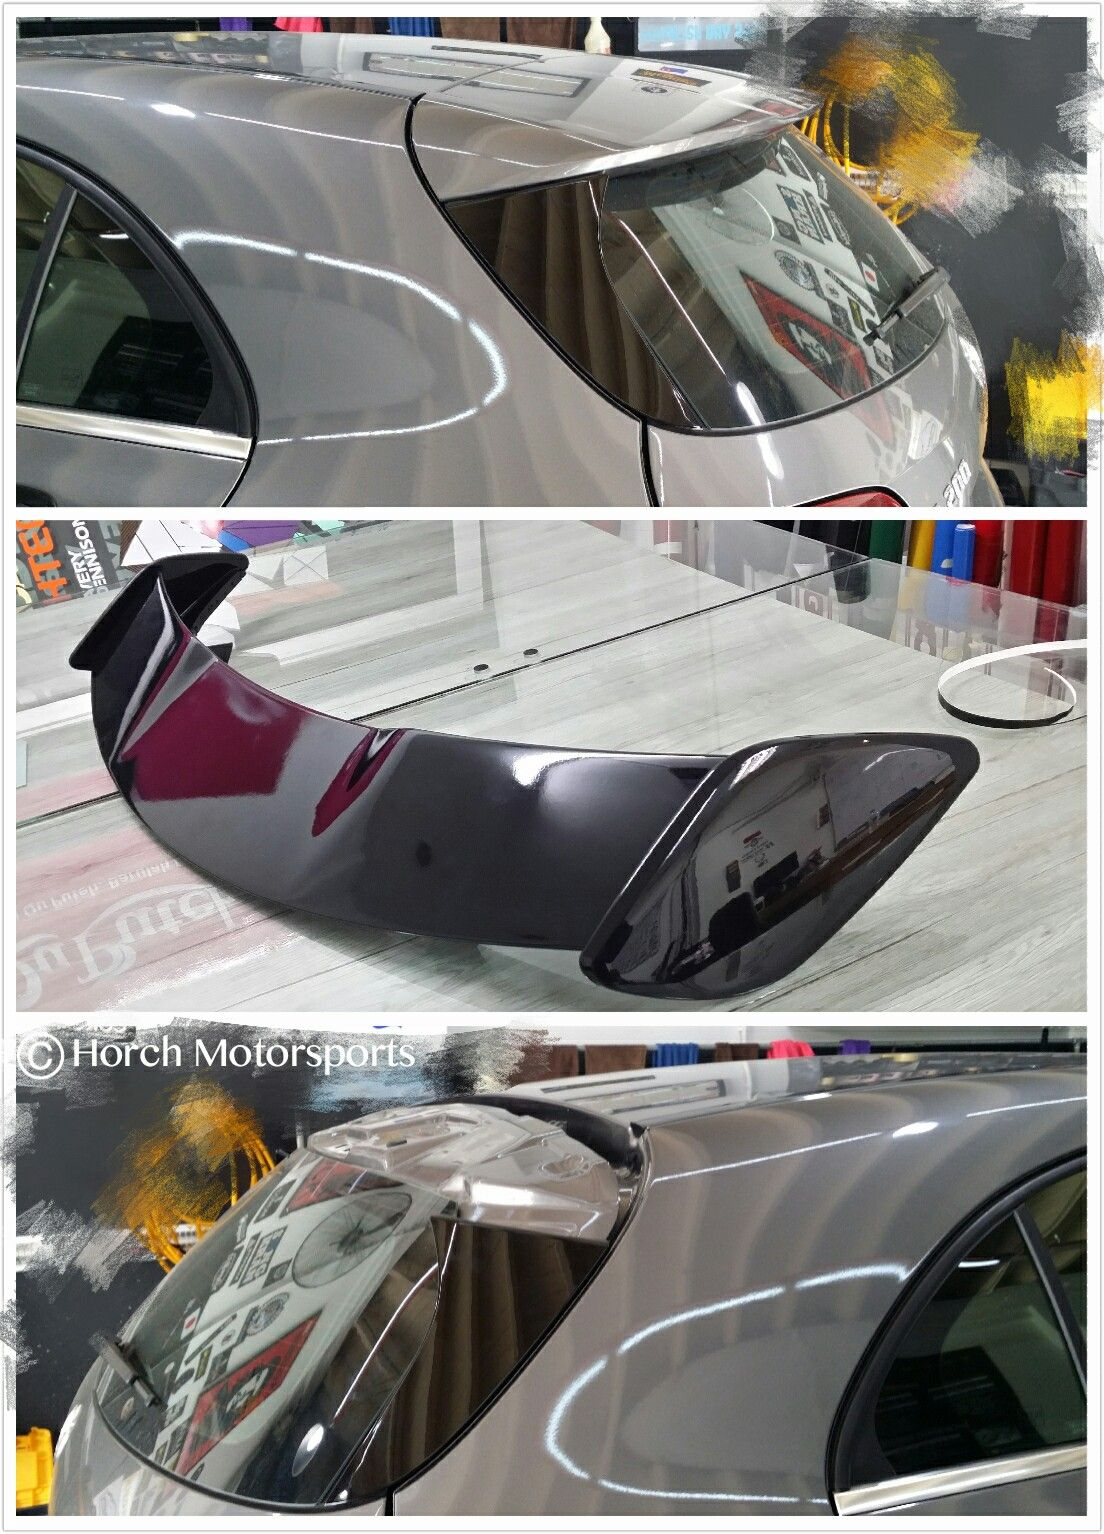 W176 A-Class ready to A45 alike AMG Wing Spoiler :) Stay tuned! Free installation @ Horch Motorsports 017-2105779. #Mercedes #Benz #W176 #AMG #Spoiler #HorchMotorsports #GT #EuroCar #Motorsport